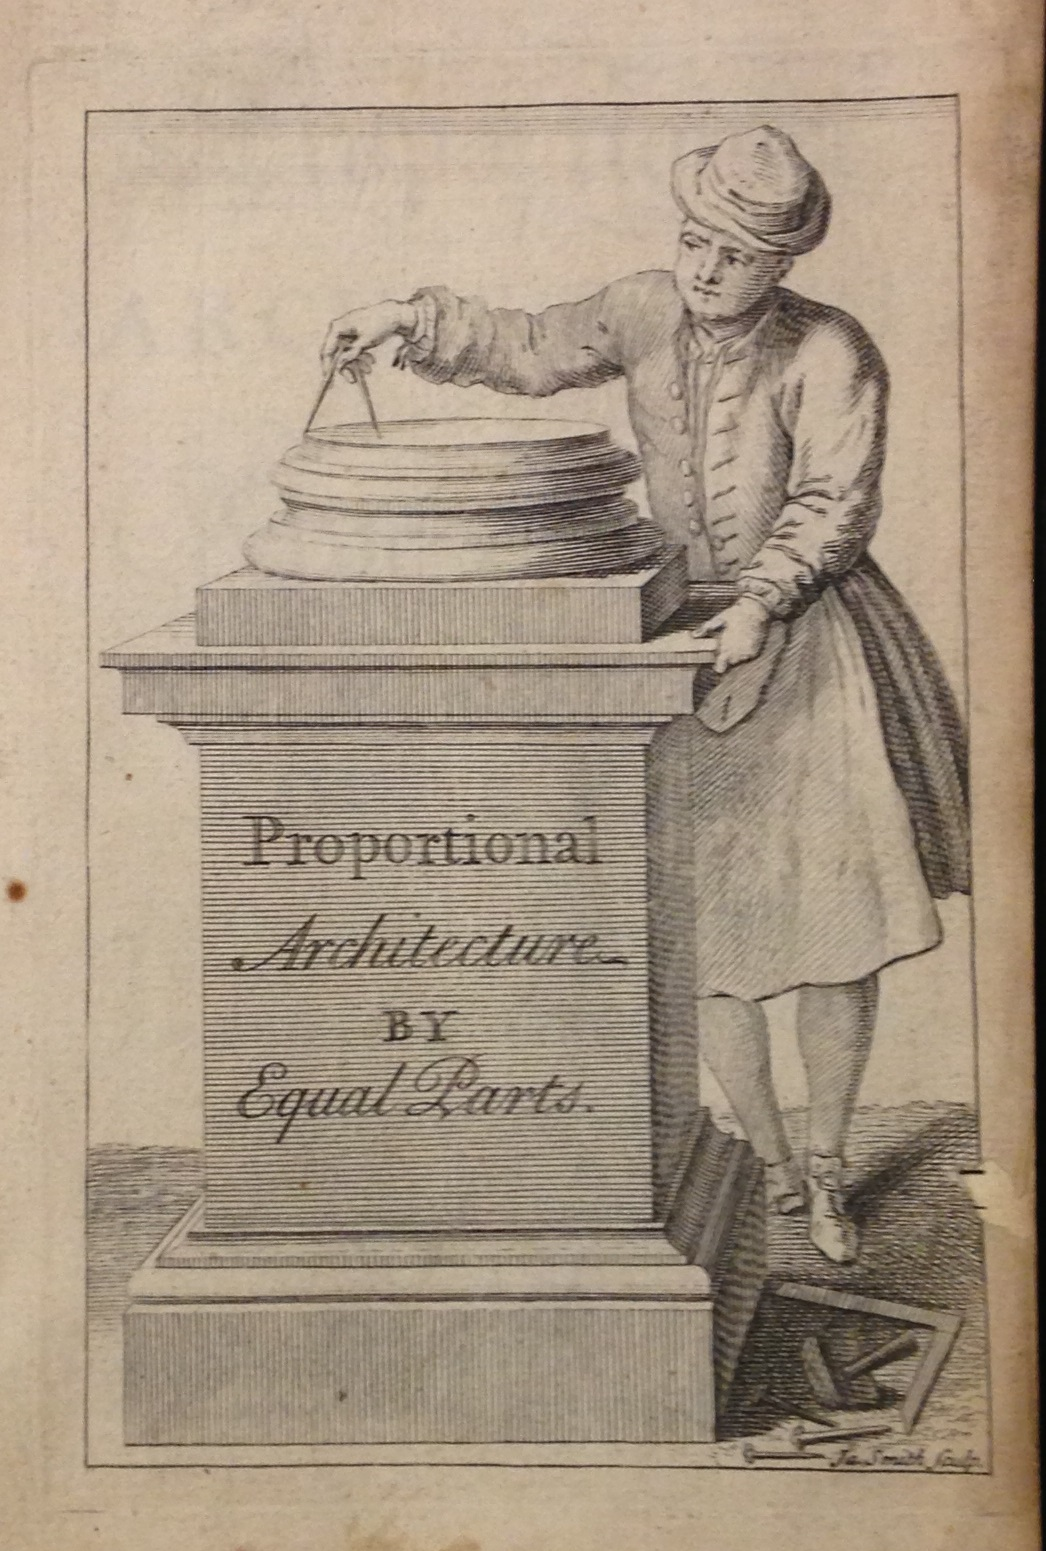 Frontispiece to William Robinson's Proportional Architecture; or, the Five Orders. London, 1736.  (NA2810 .R65 1736)